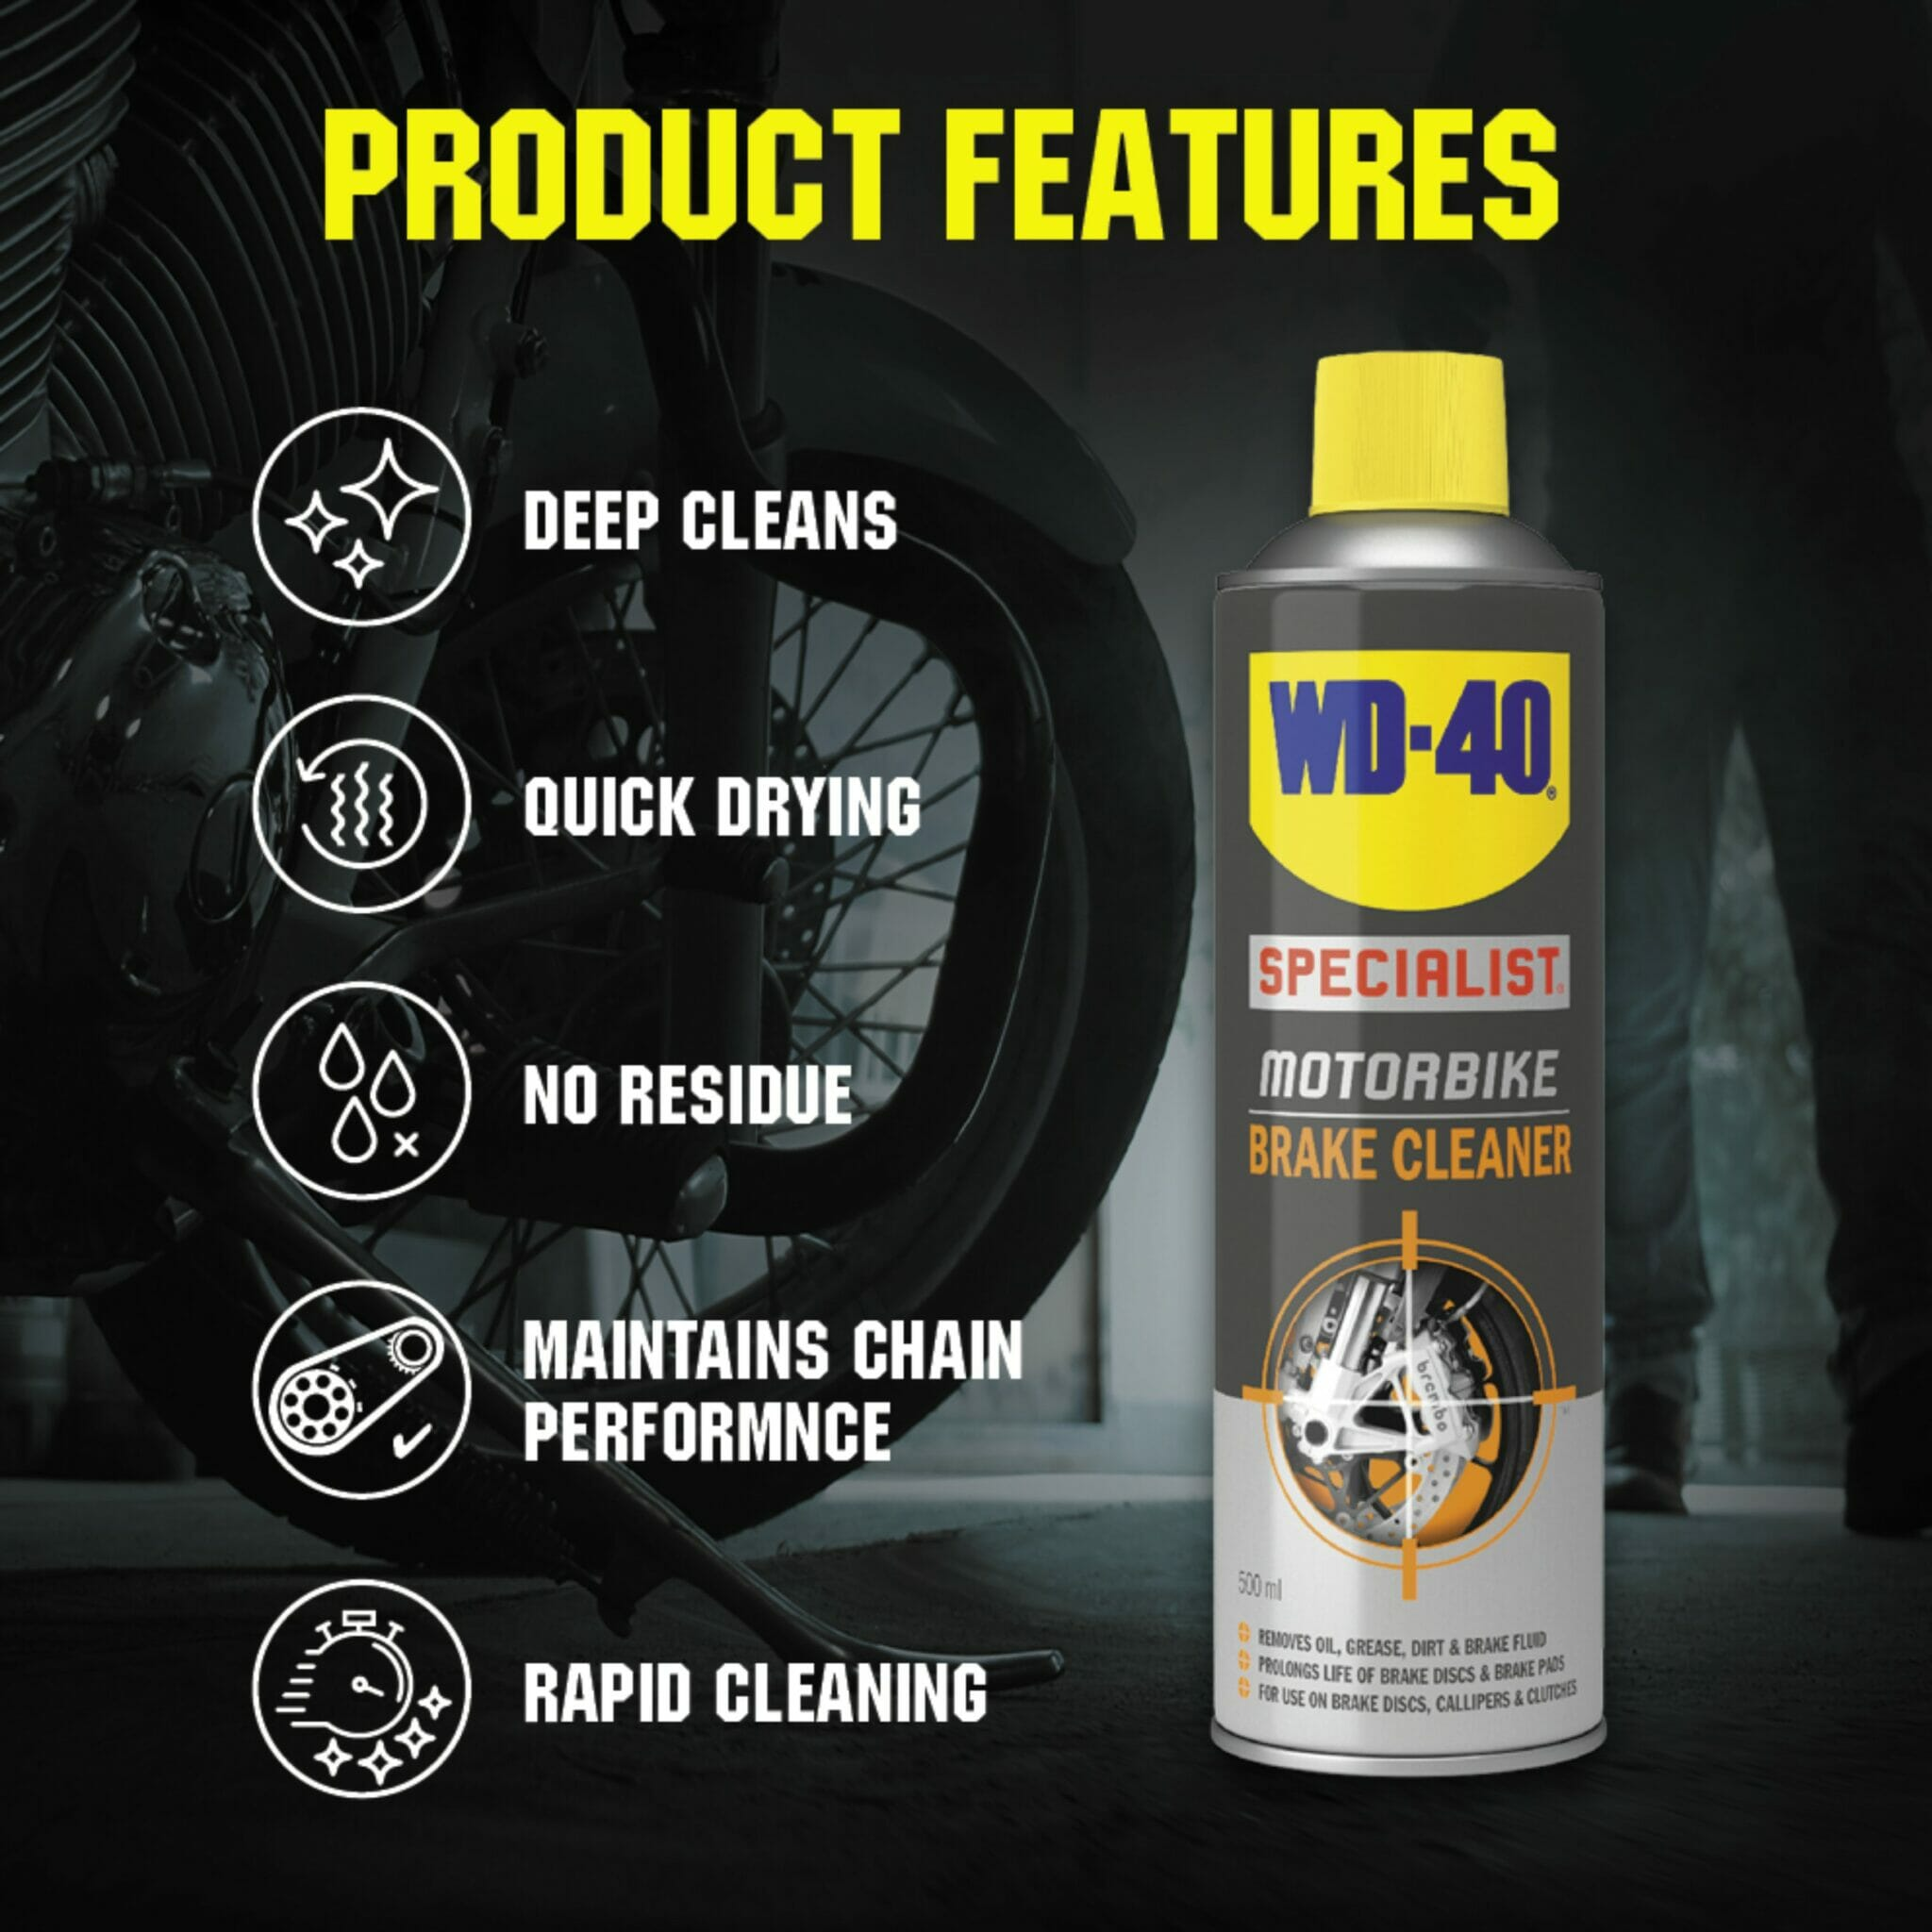 uk wd40 specialist motorbike brake cleaner 400ml product features lifestyle background